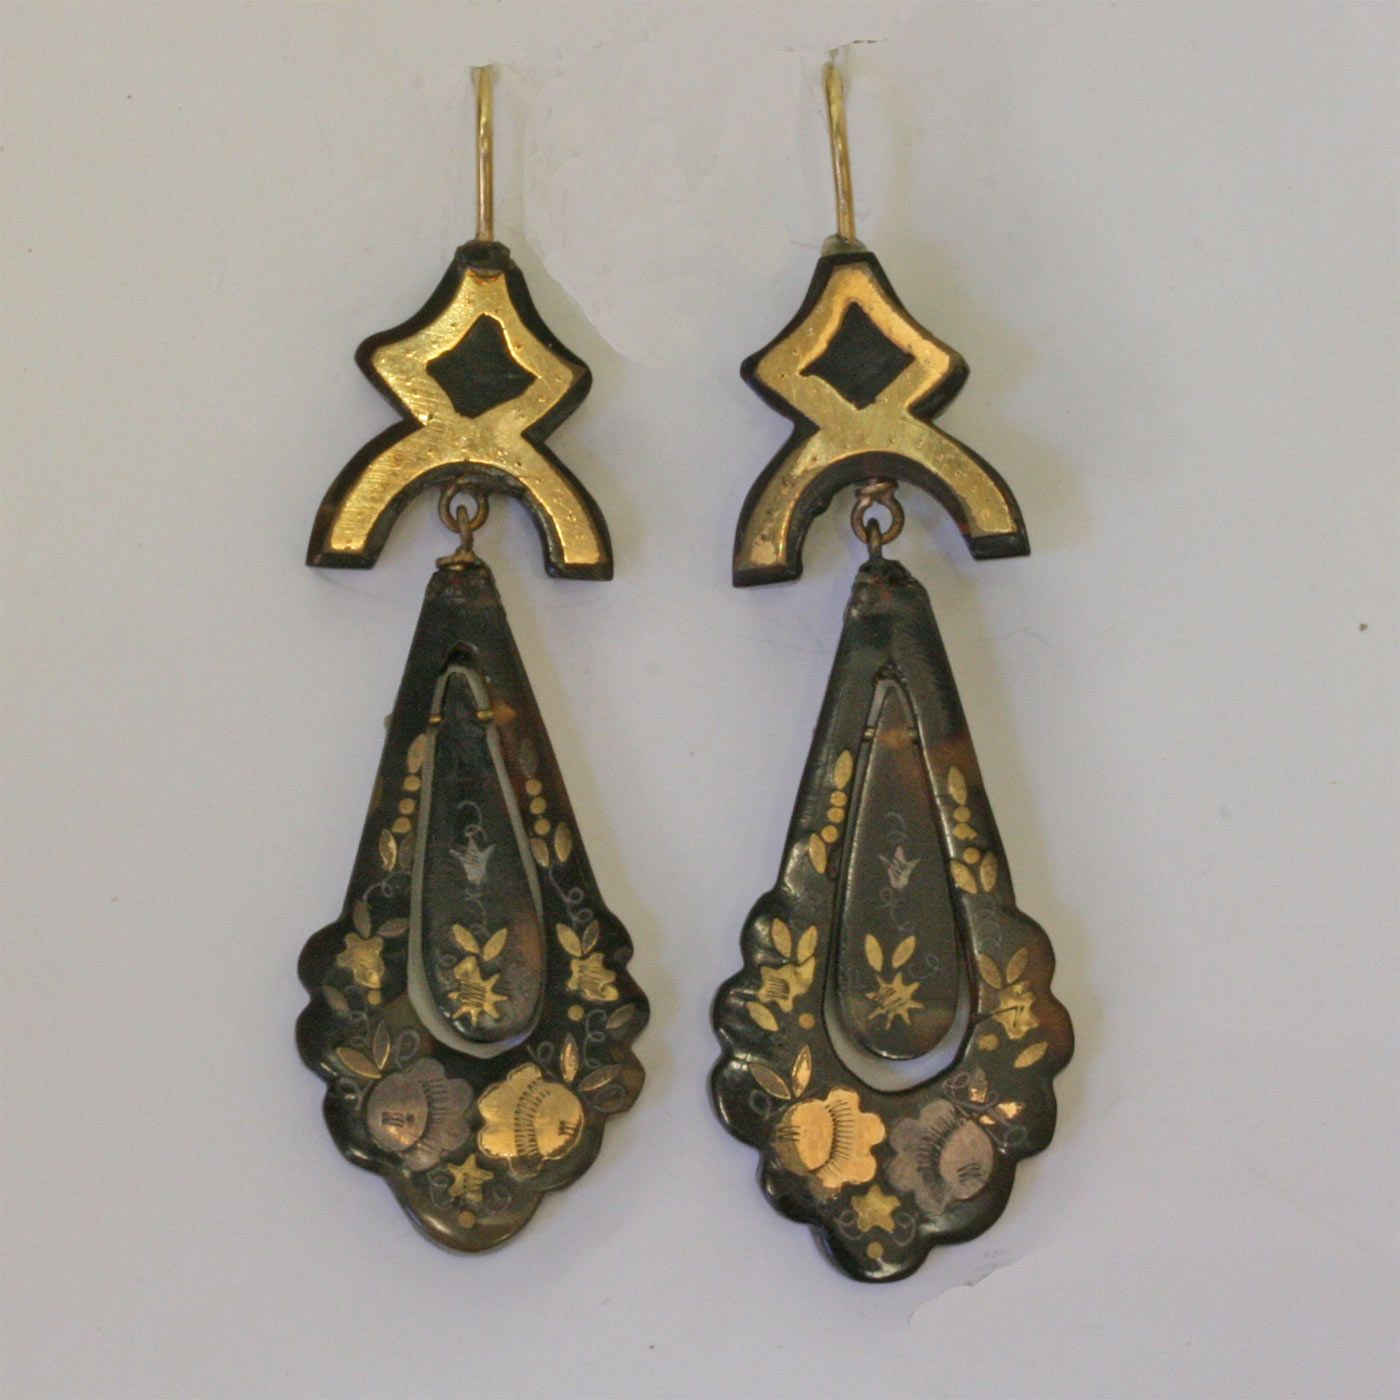 Buy Victorian pique drop earrings from KalmarAntiques. We are one of the top antique jewellery provider from Sydney providing Antique, Antique Earrings, Pique Jewellery. Call us on 02 9264 3663 for more information.